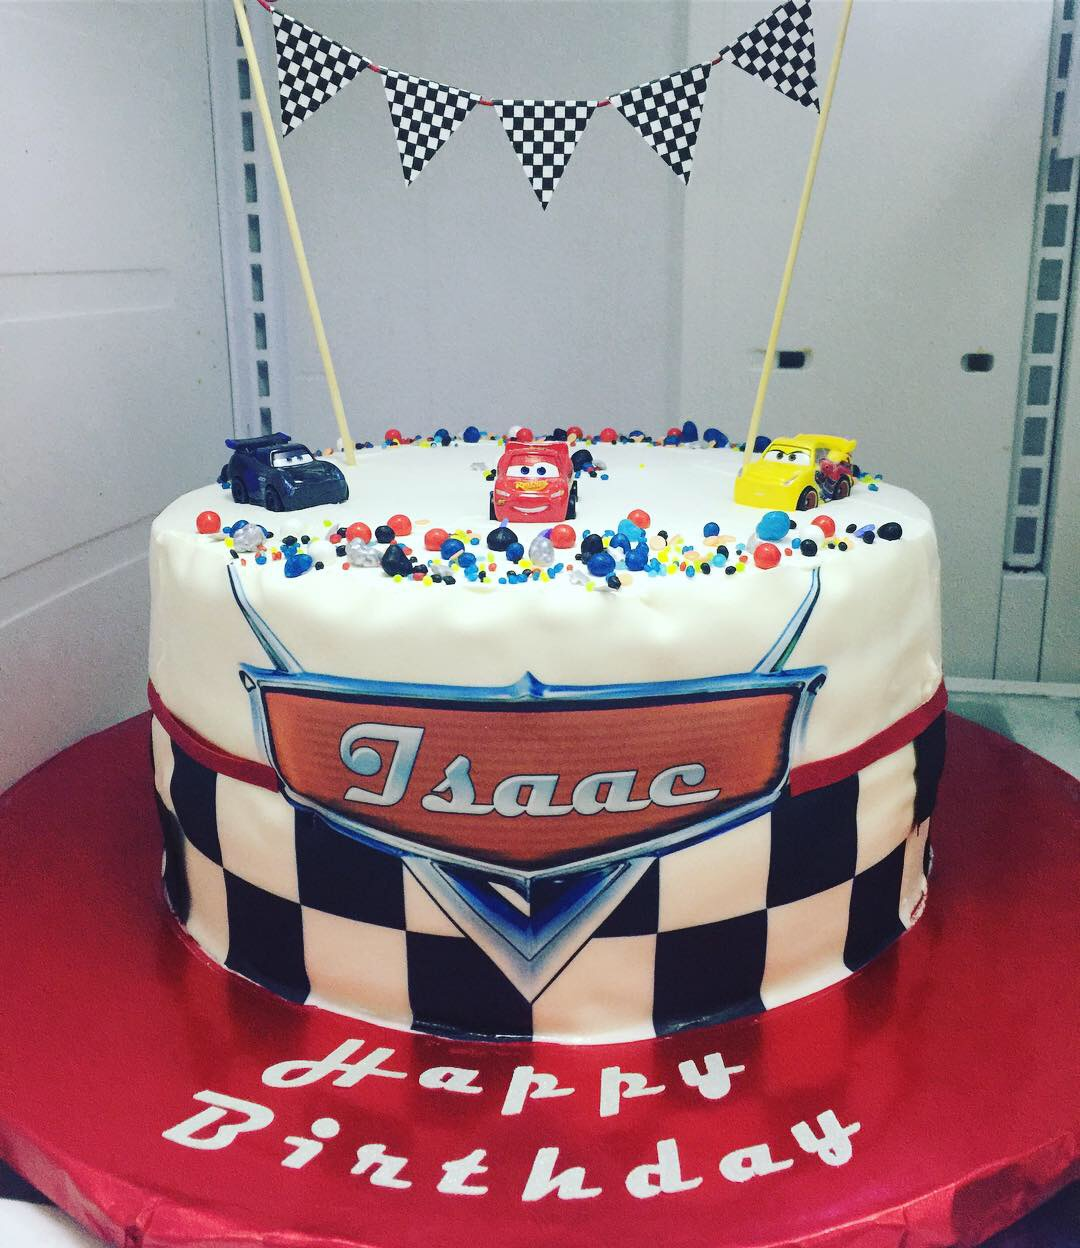 Astonishing Disney Cars Birthday Cake Sweet Tasty Bakery Funny Birthday Cards Online Alyptdamsfinfo